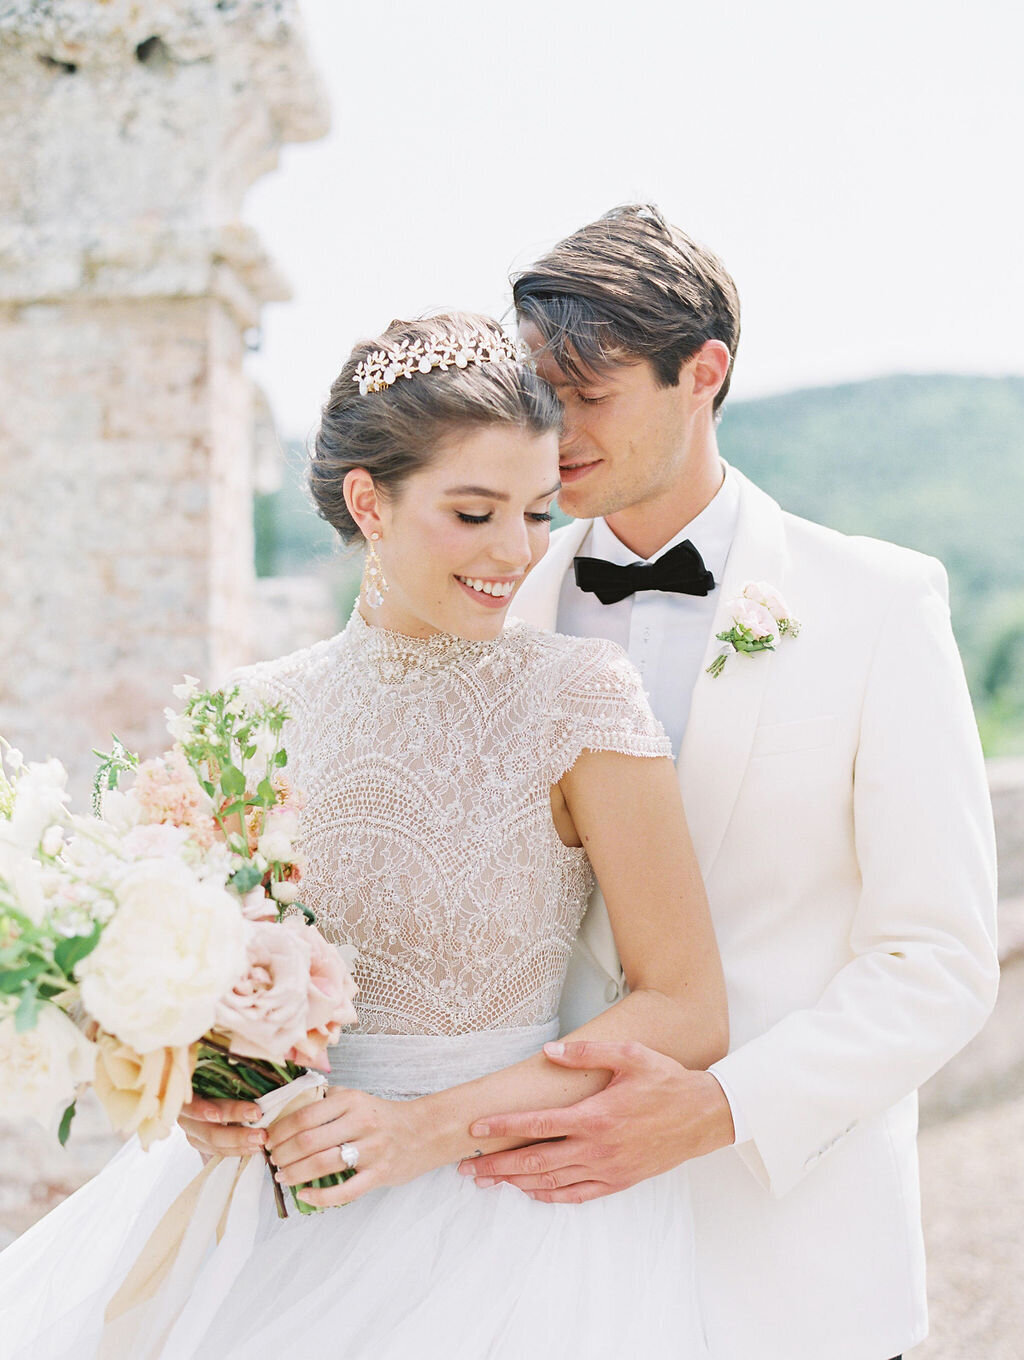 Trine_Juel_hair_and_makeupartist_wedding_Italy_Castello_Di_CelsaQuicksallPhotography_CastelloDiCelsa0294